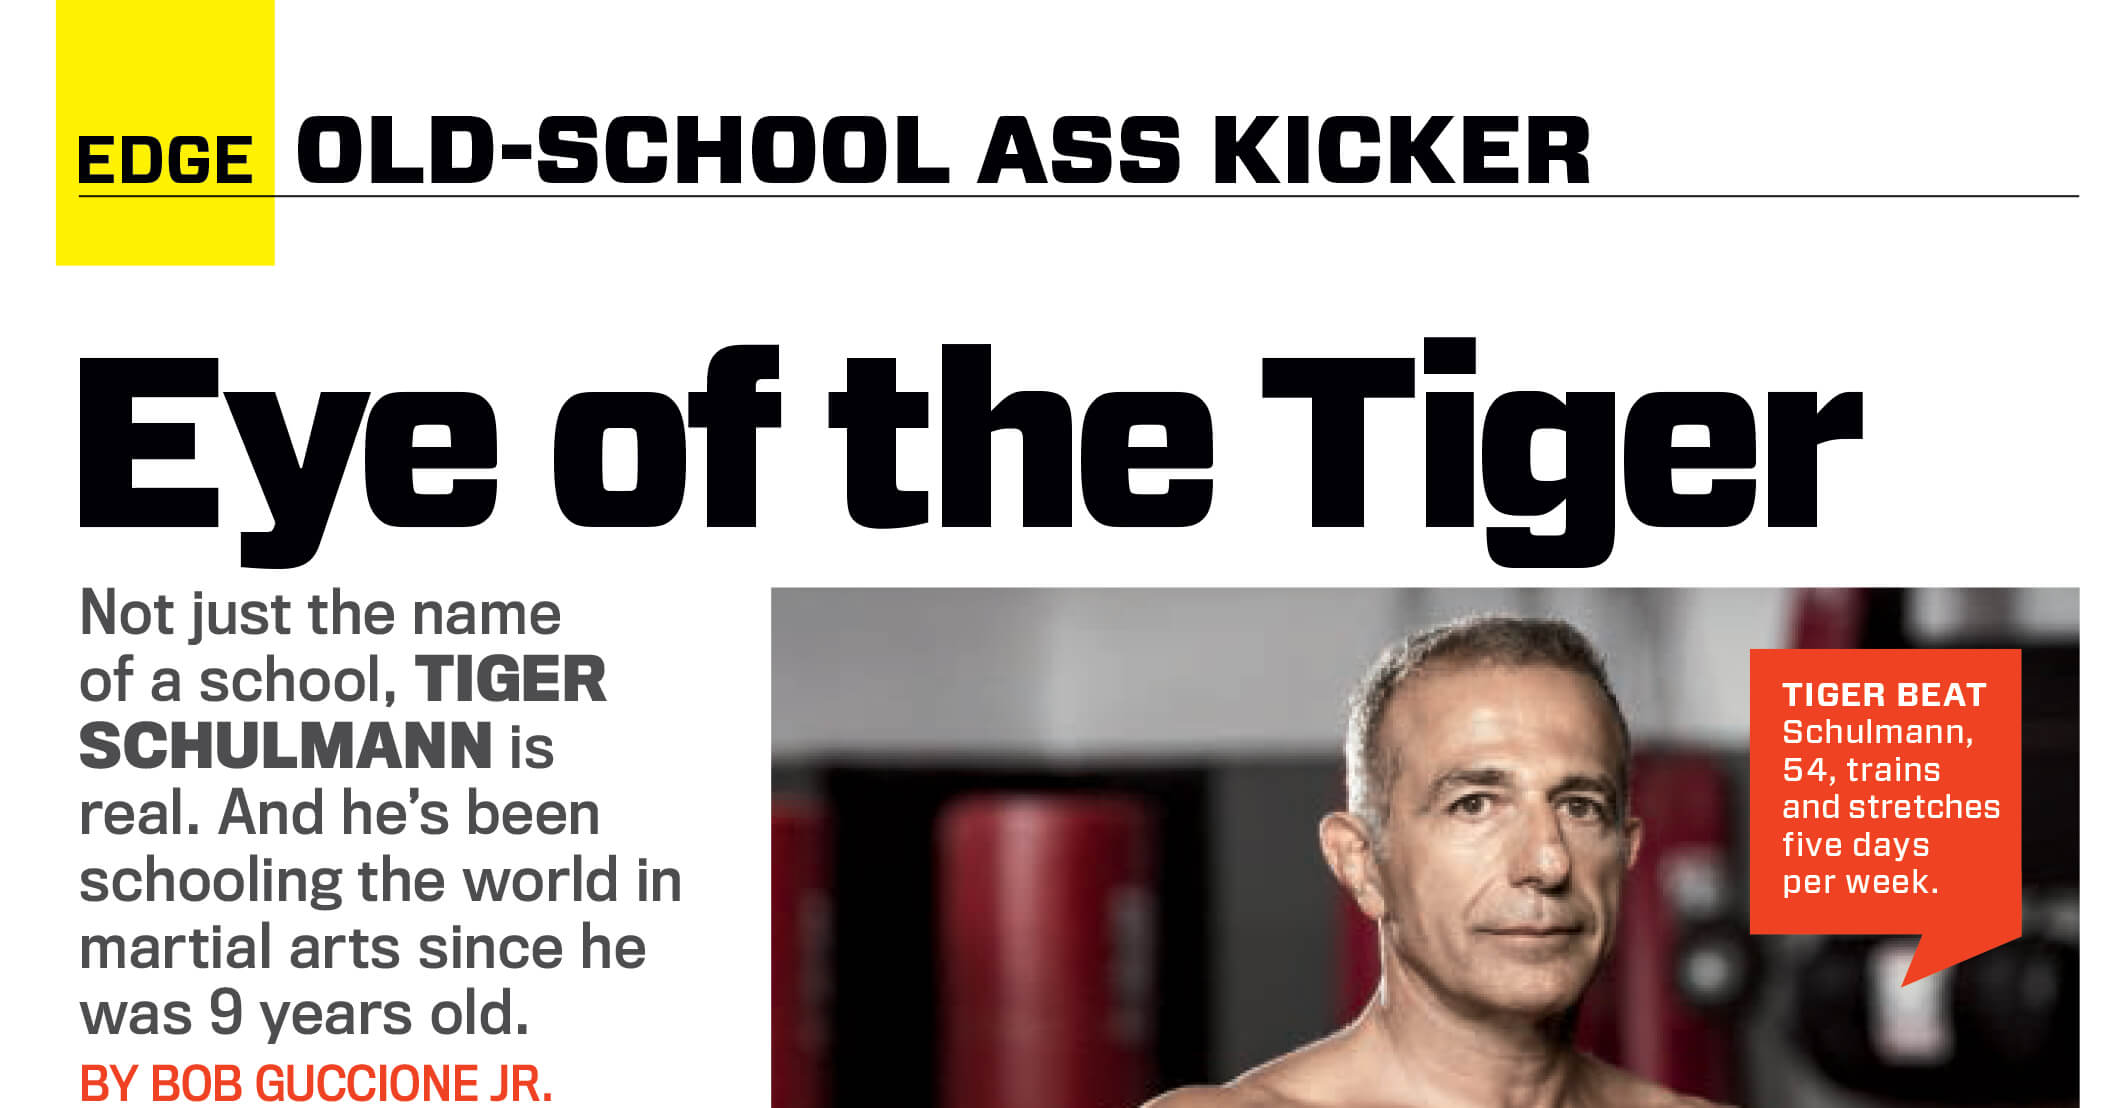 Tiger Schulmann's Martial Arts | Magazine Article